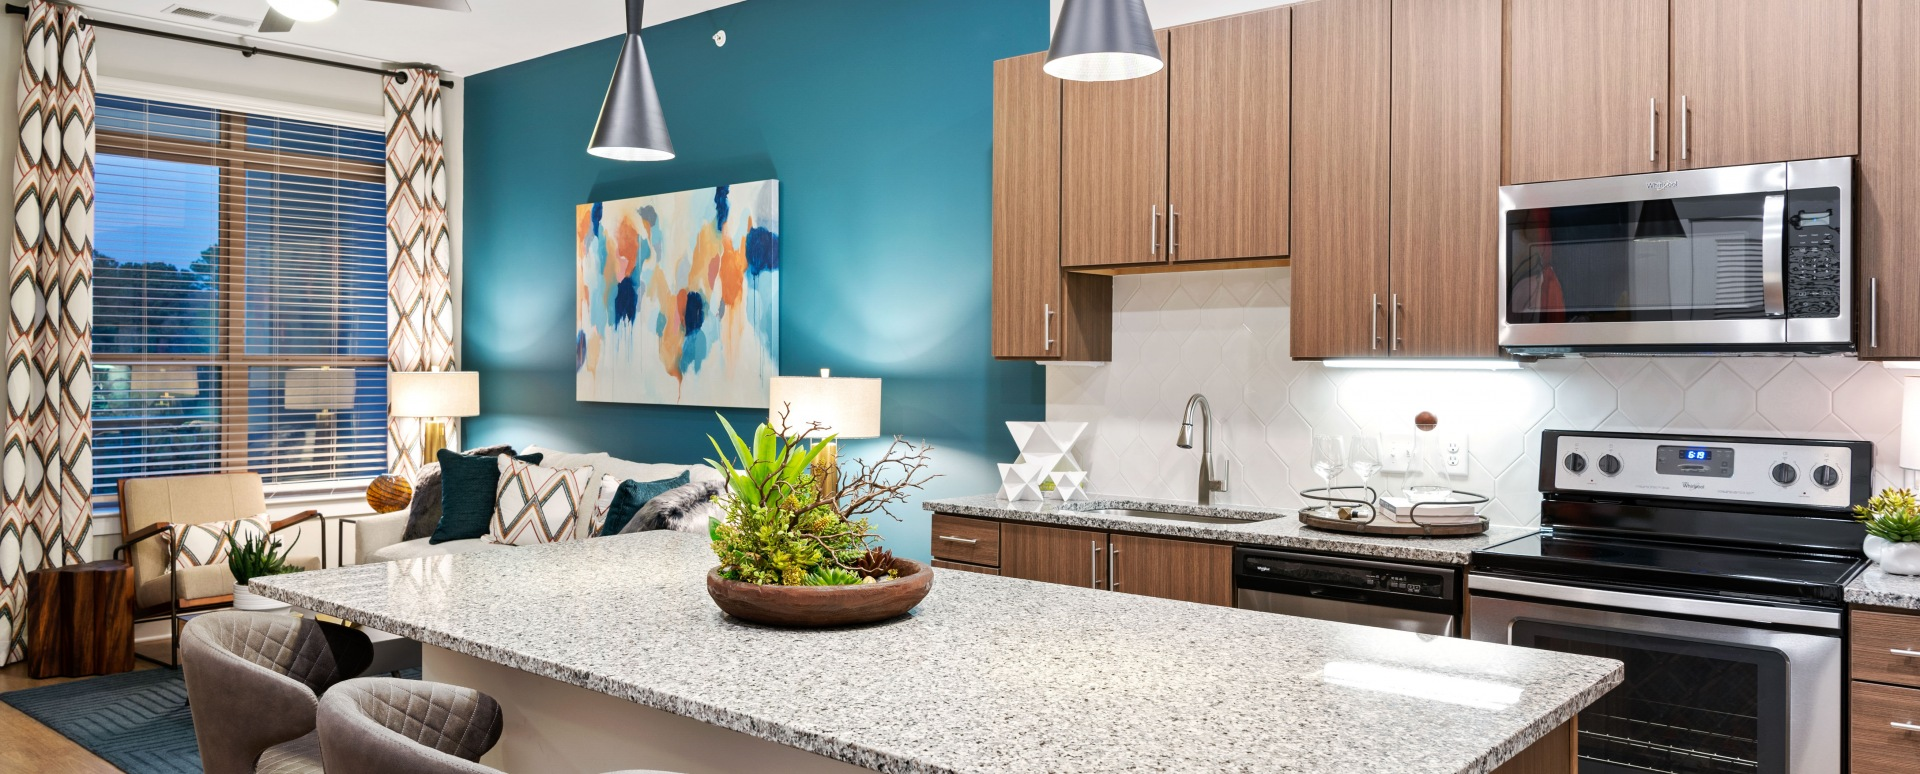 Kitchen with granite countertops and designer hardware at our luxury apartments in Cary, NC